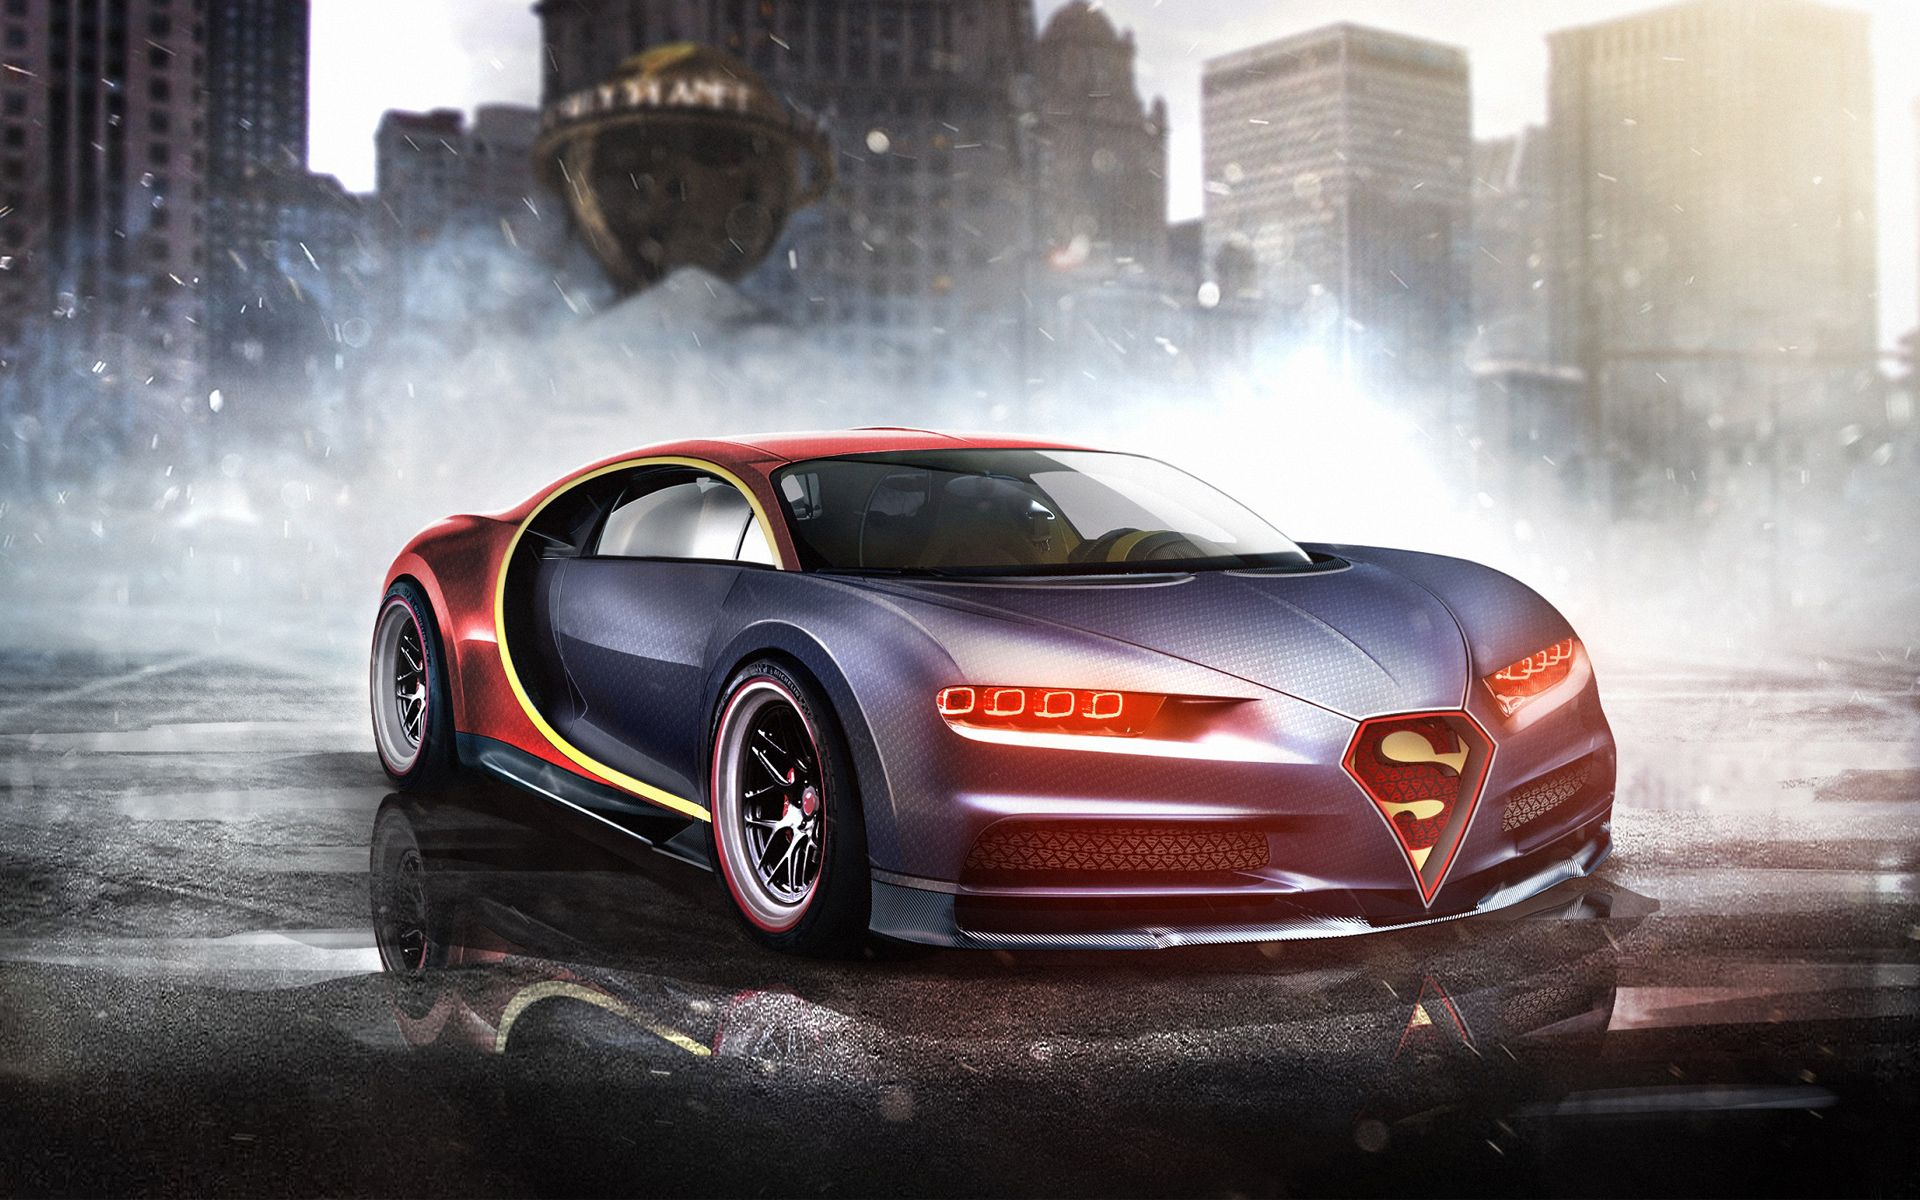 Gentil Need For Speed Rivals Bugatti Cop Car Pictures Car Canyon   Wallpapers 4k    Pinterest   3d Wallpaper And Wallpaper